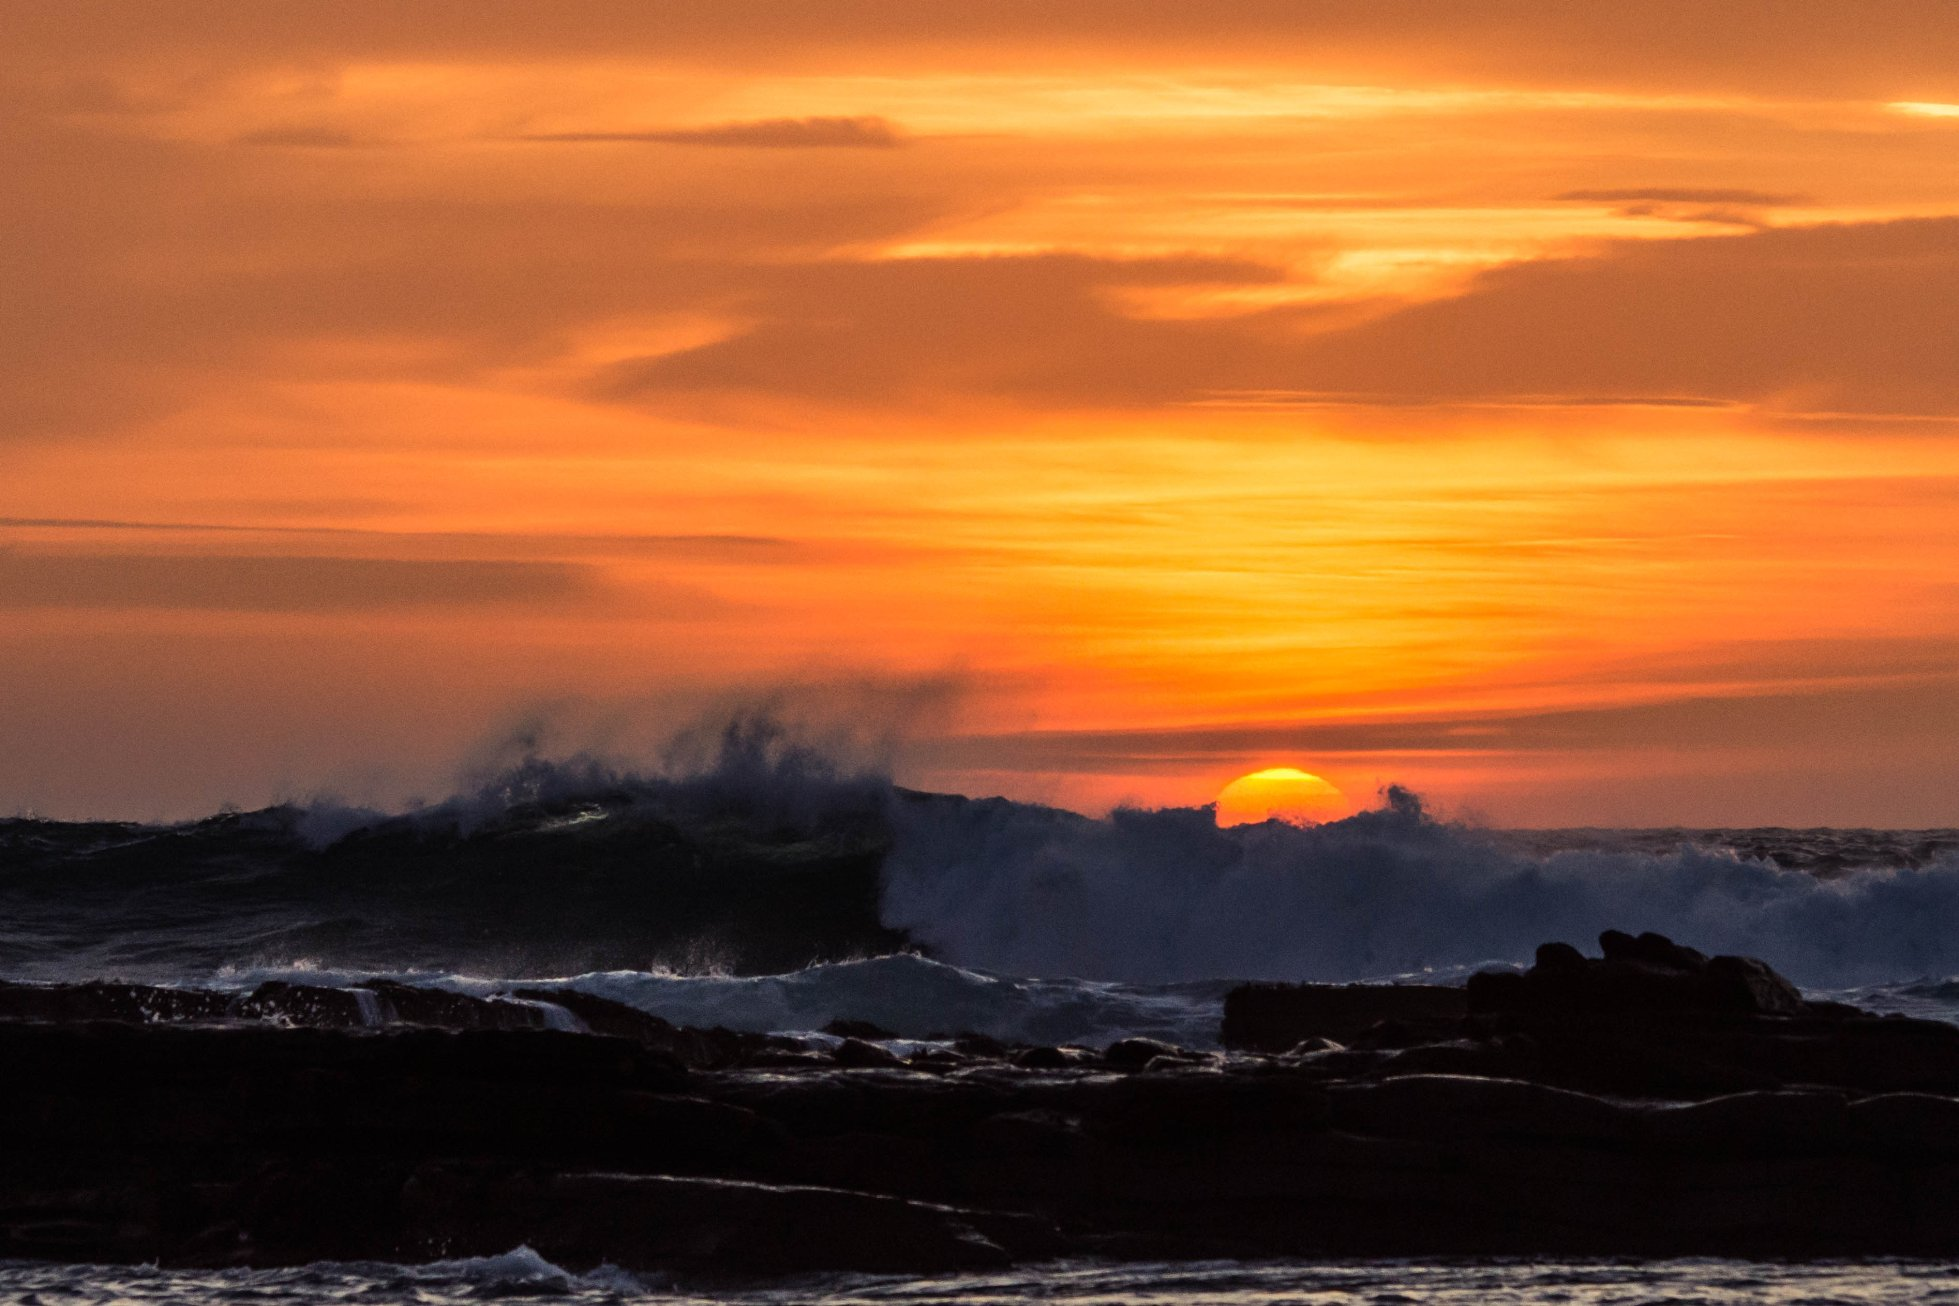 Sunset at Skaill, Orkney - image by Graham Duffin